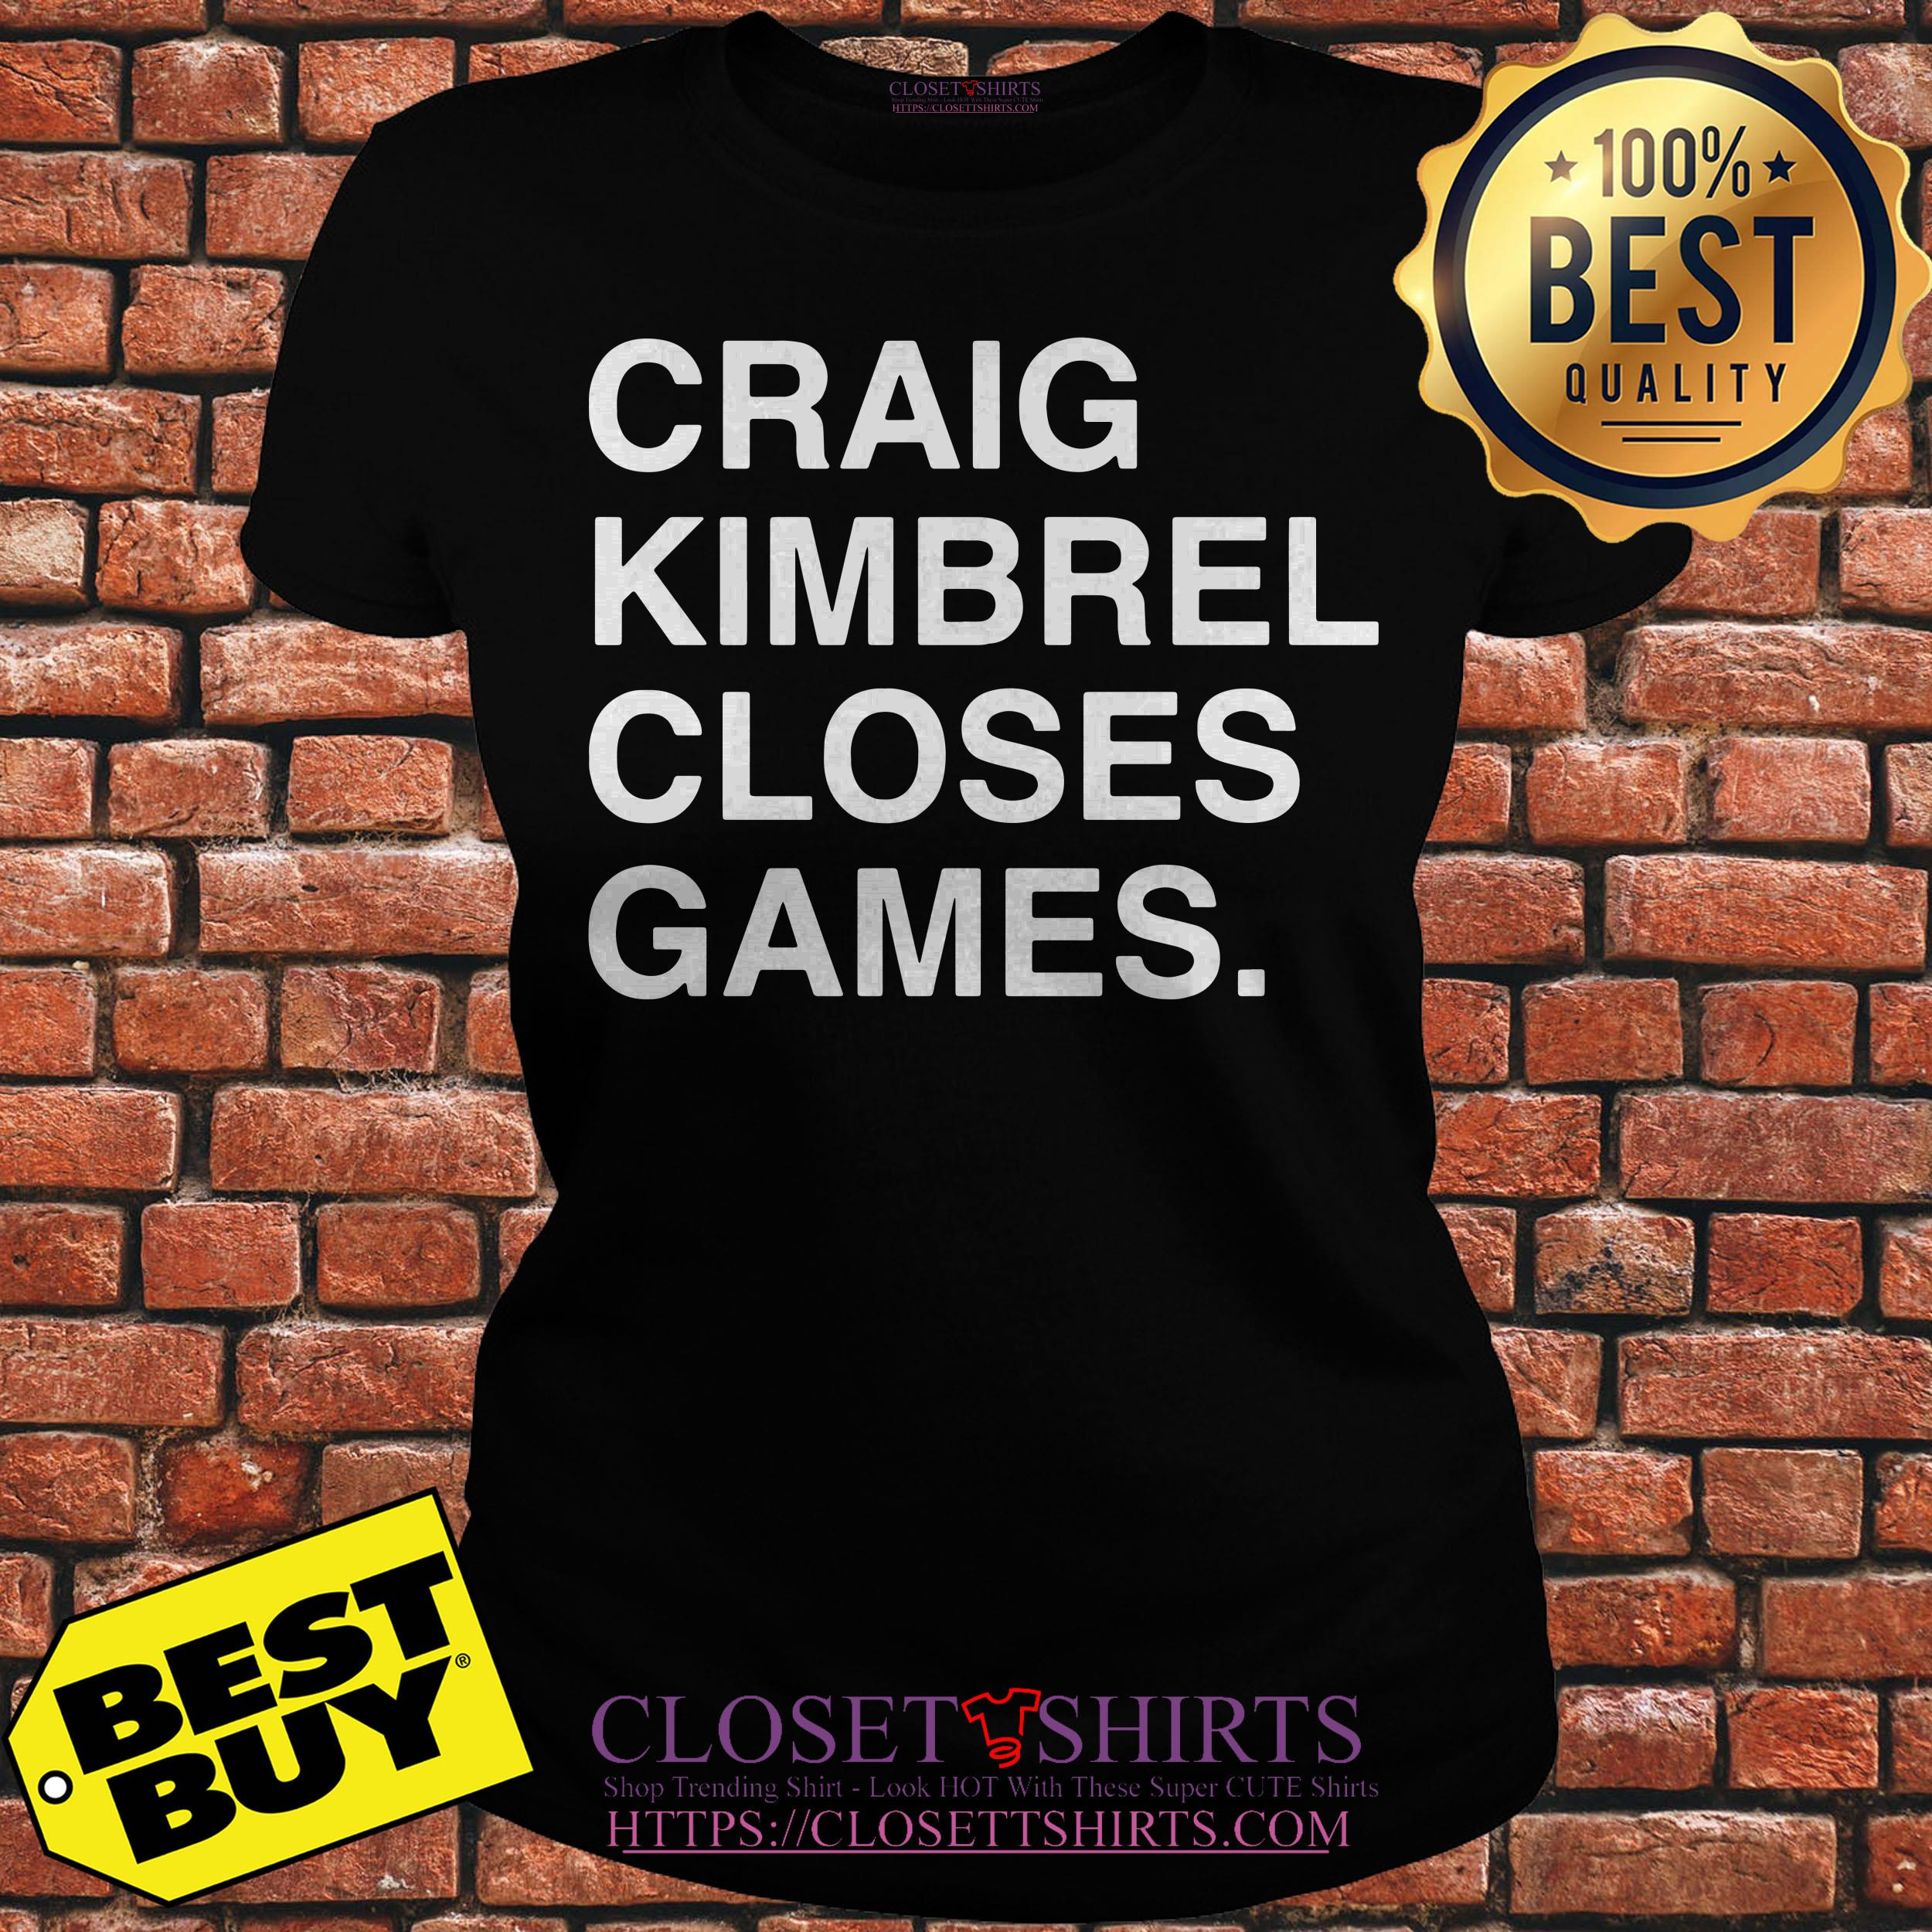 Craig Kimbrel Closes Games ladies tee